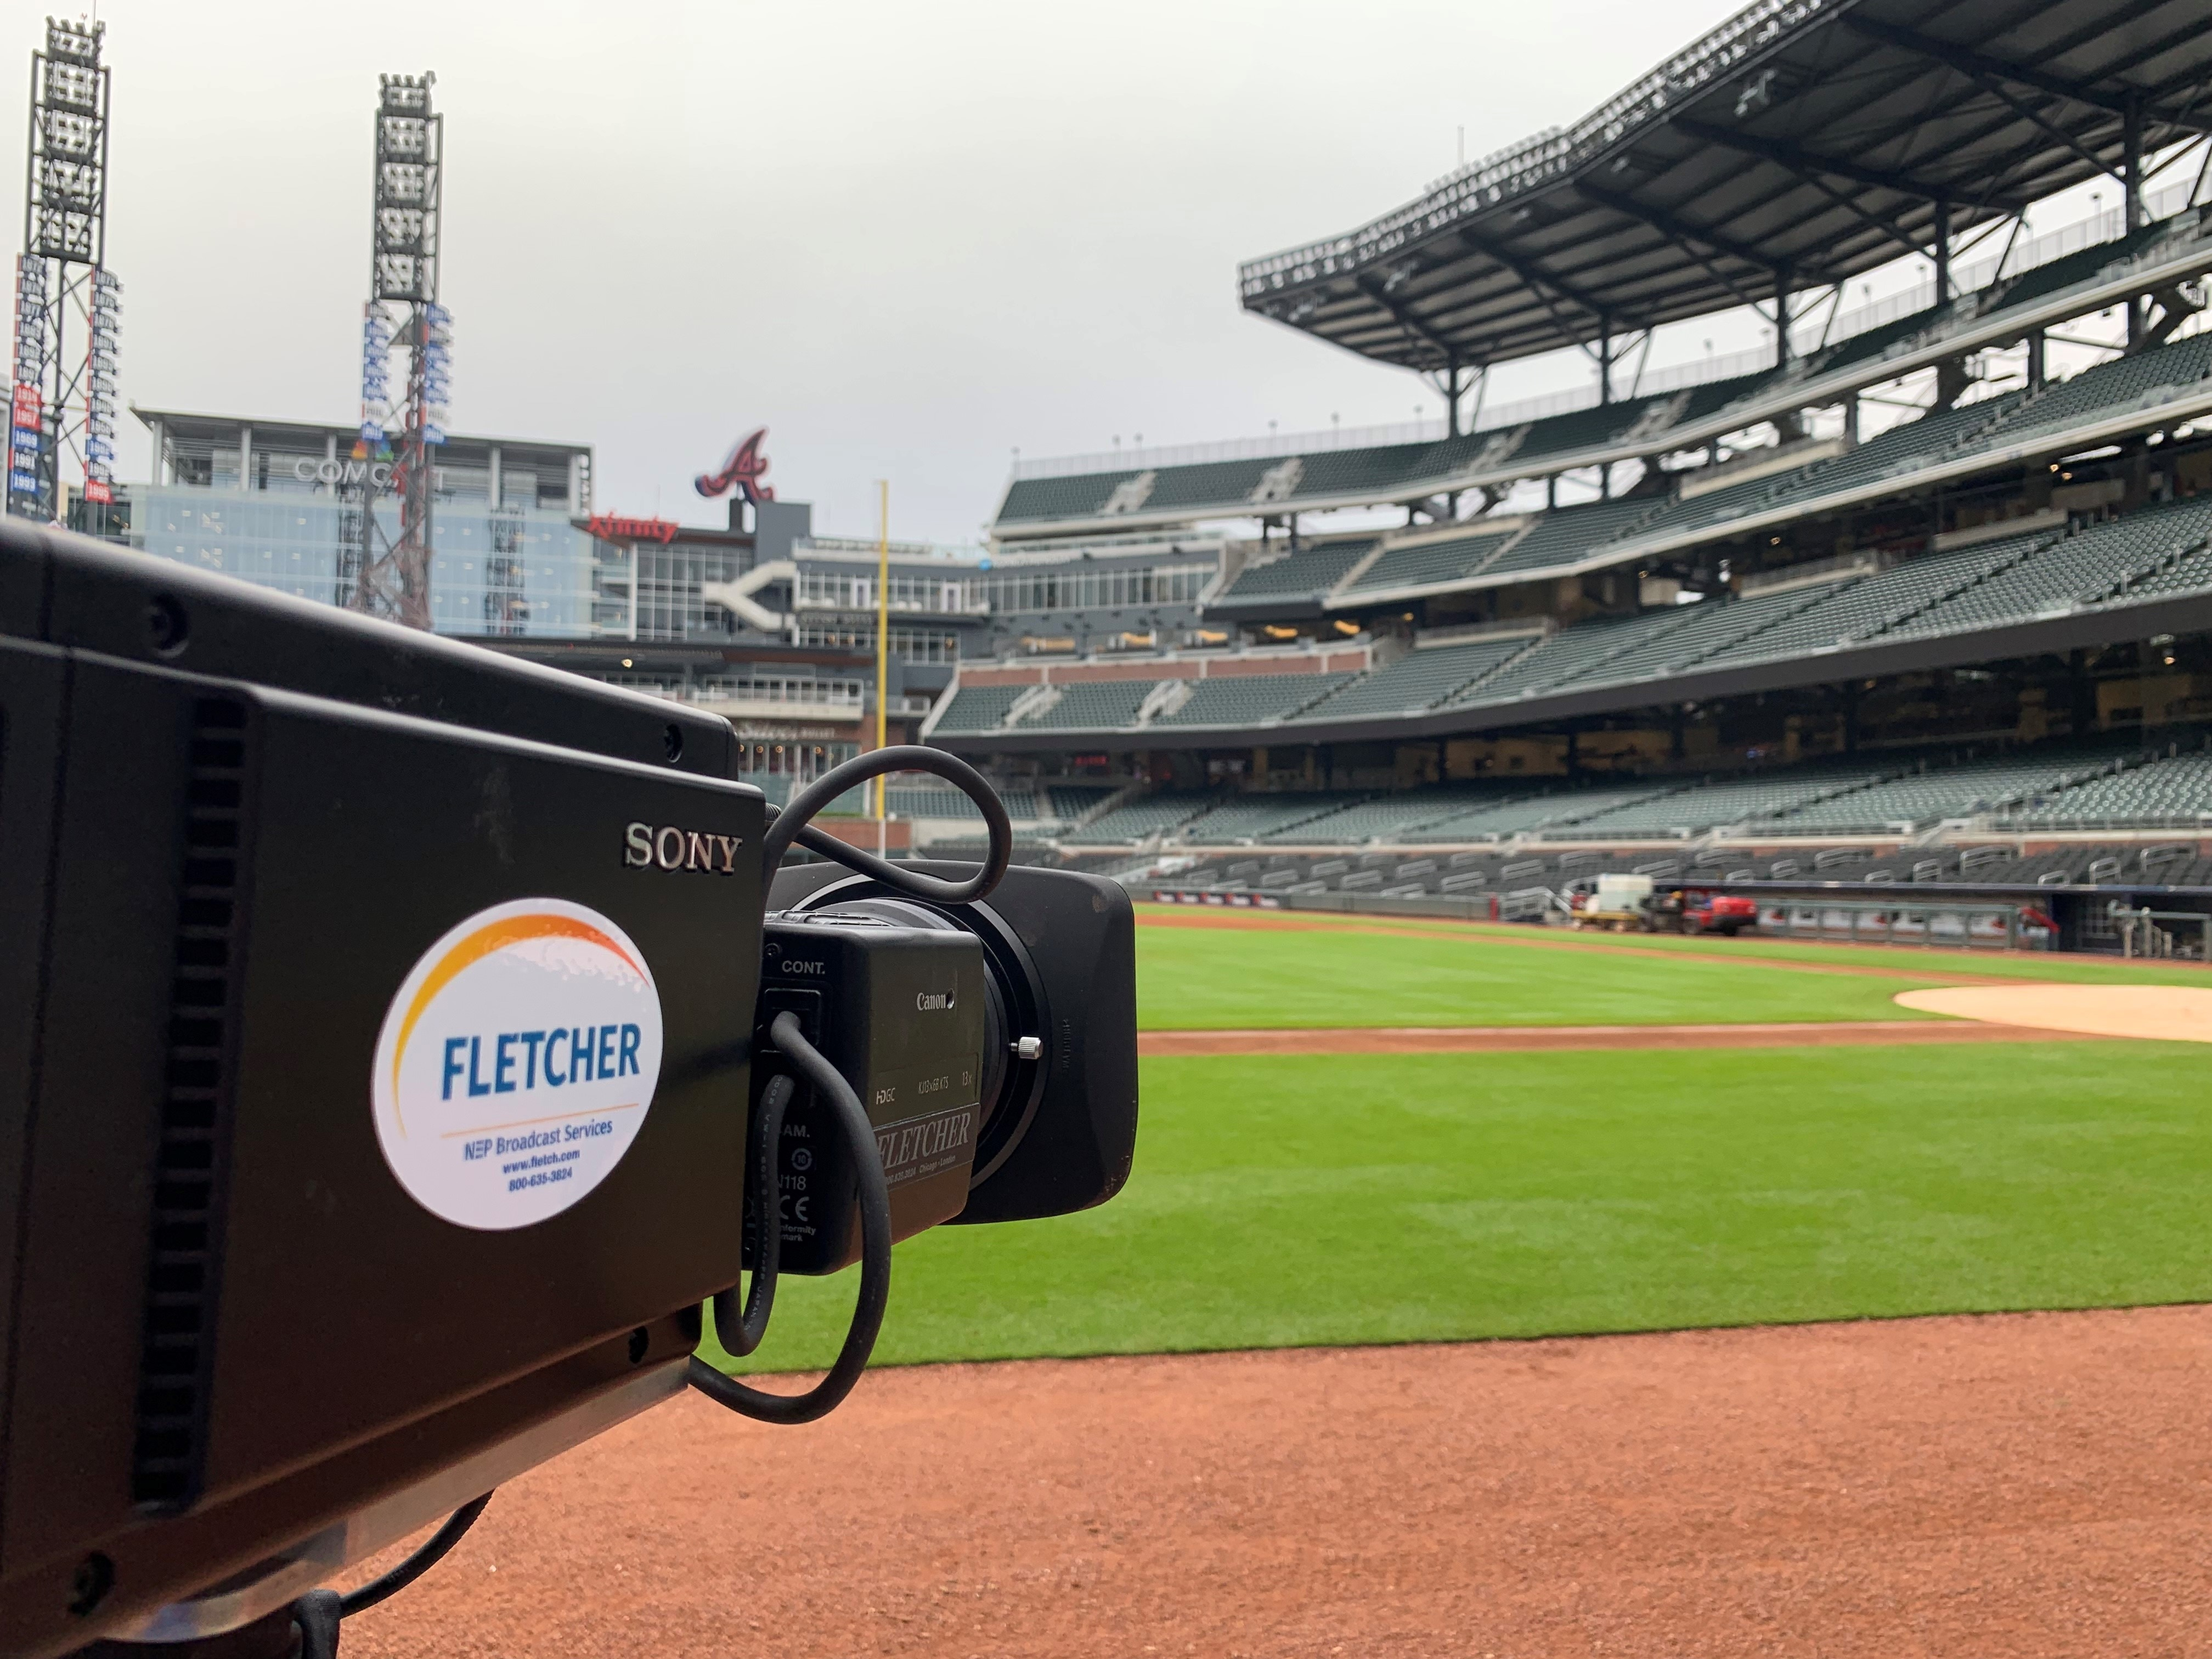 A Sony HDCV-P50 camera, sporting a white oval Fletcher sticker, sits outside, low on the outfield at a baseball stadium. The camera is at extreme left, facing across the field to the right, and away from the viewer. View #1.